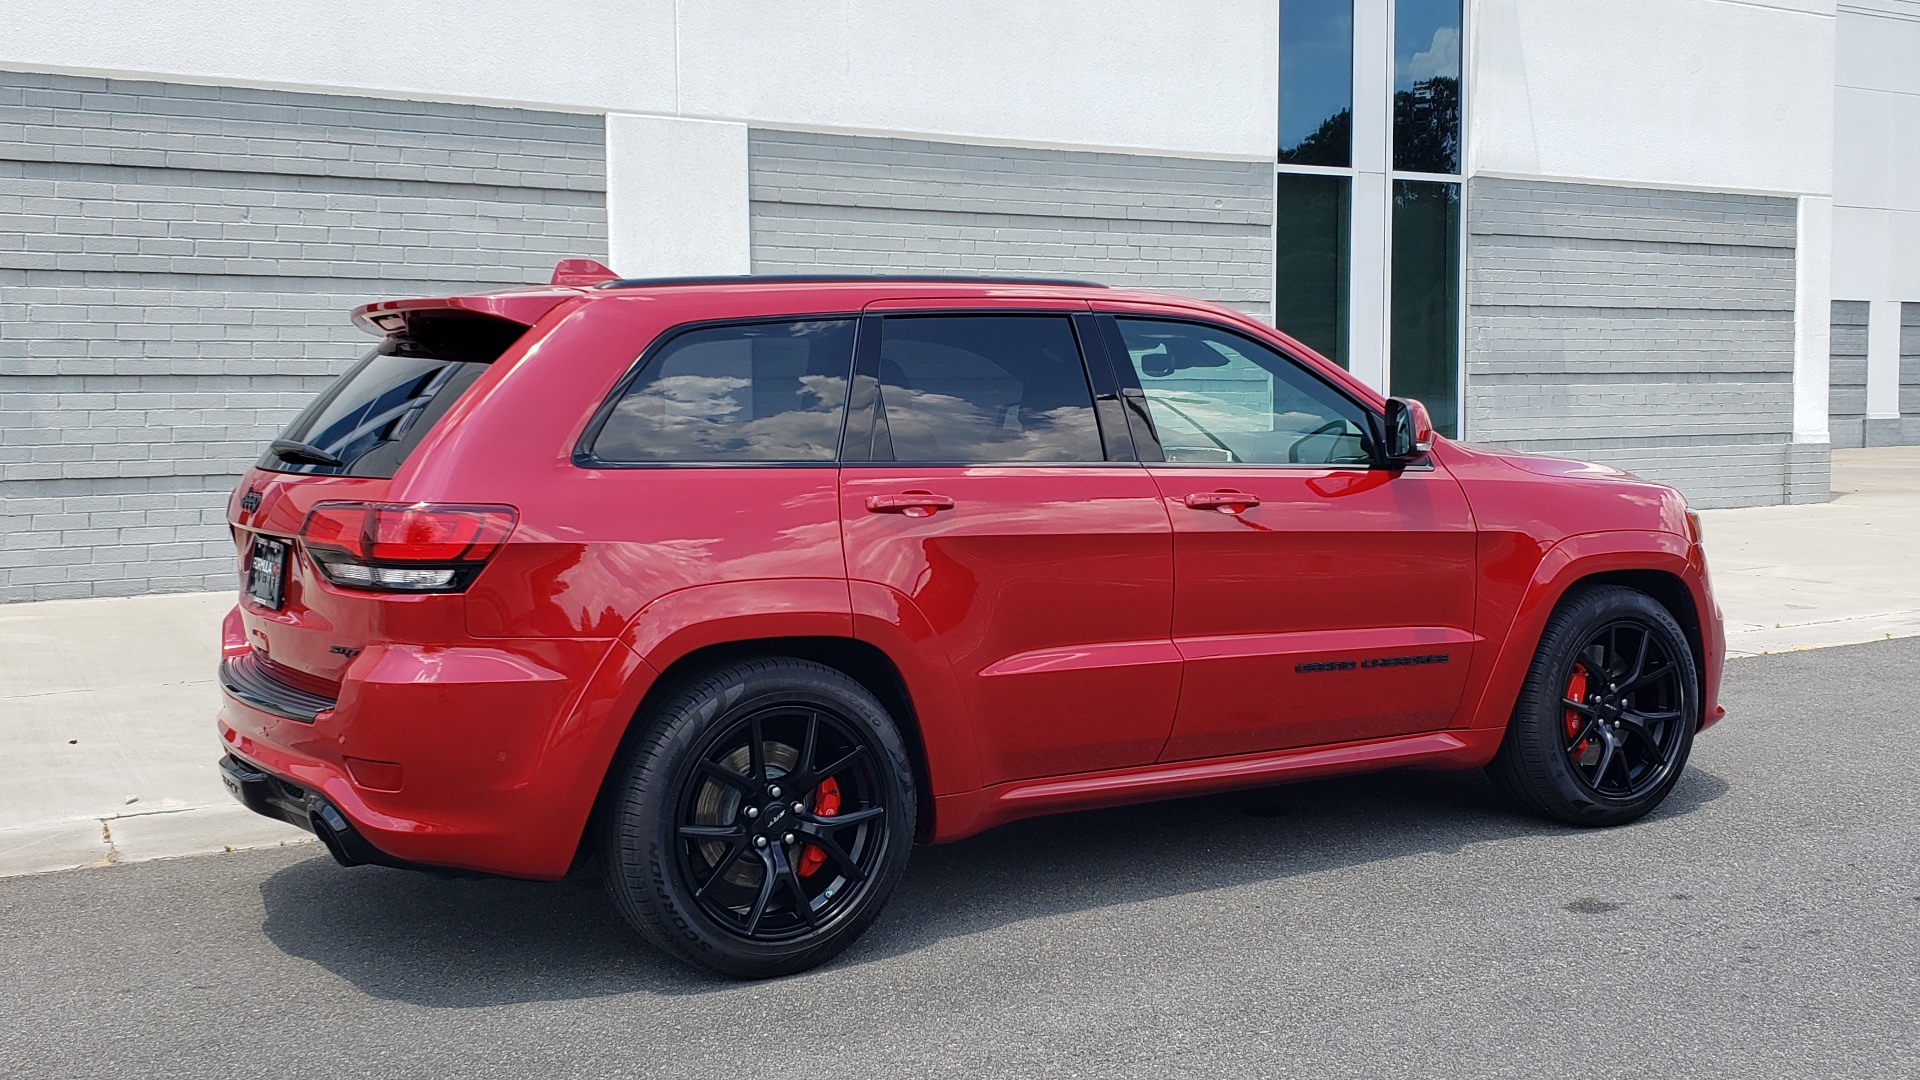 Used 2018 Jeep GRAND CHEROKEE SRT 4X4 / 6.4L HEMI (475HP) / NAV / SUNROOF / H/K SND / REARVIEW for sale Sold at Formula Imports in Charlotte NC 28227 12